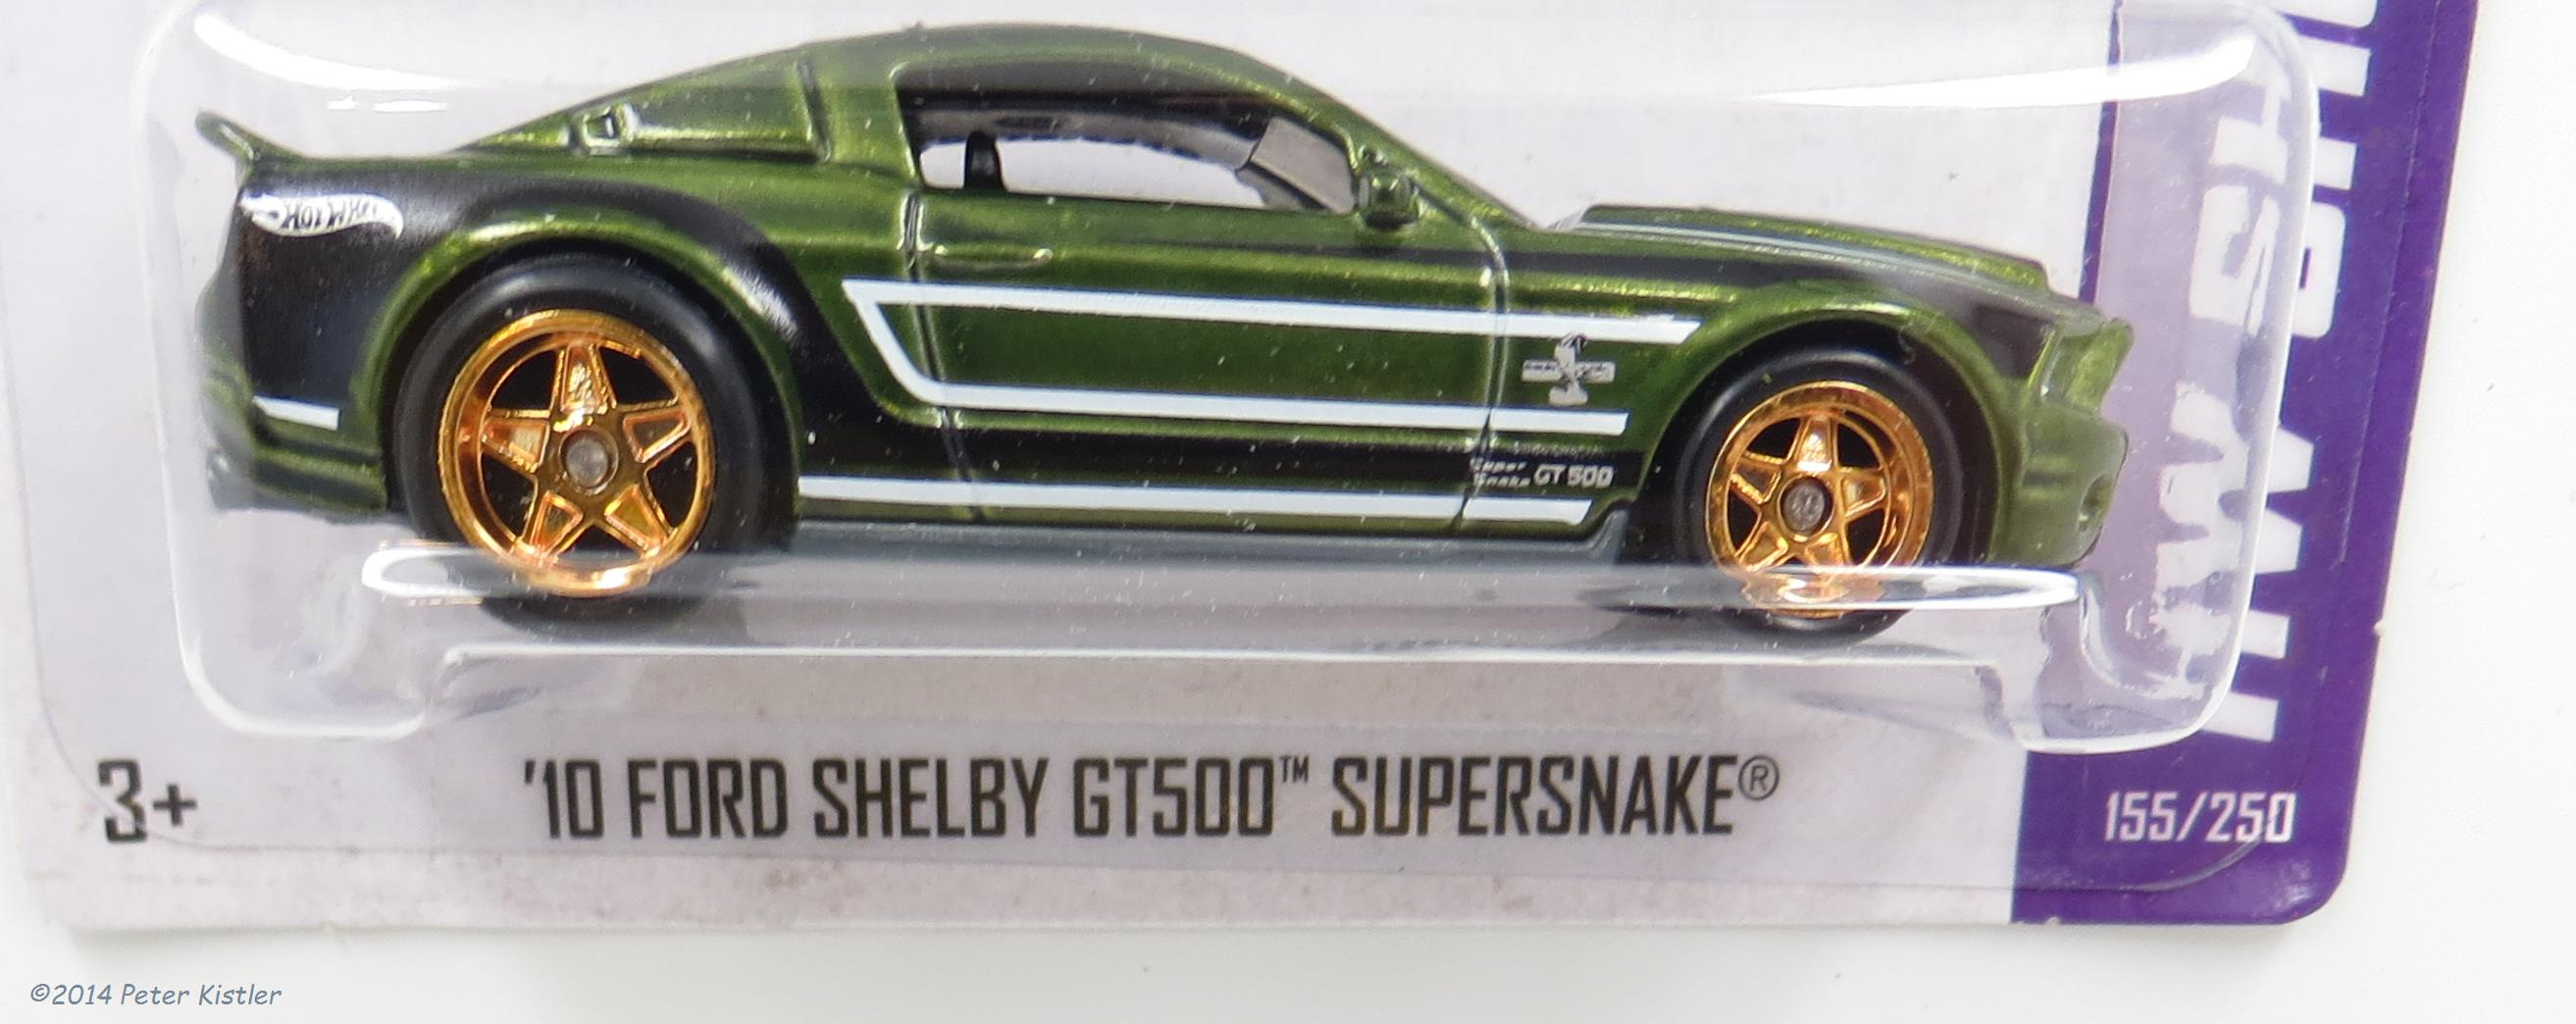 10 Ford Shelby GT500 Super Snake Hot Wheels Wiki